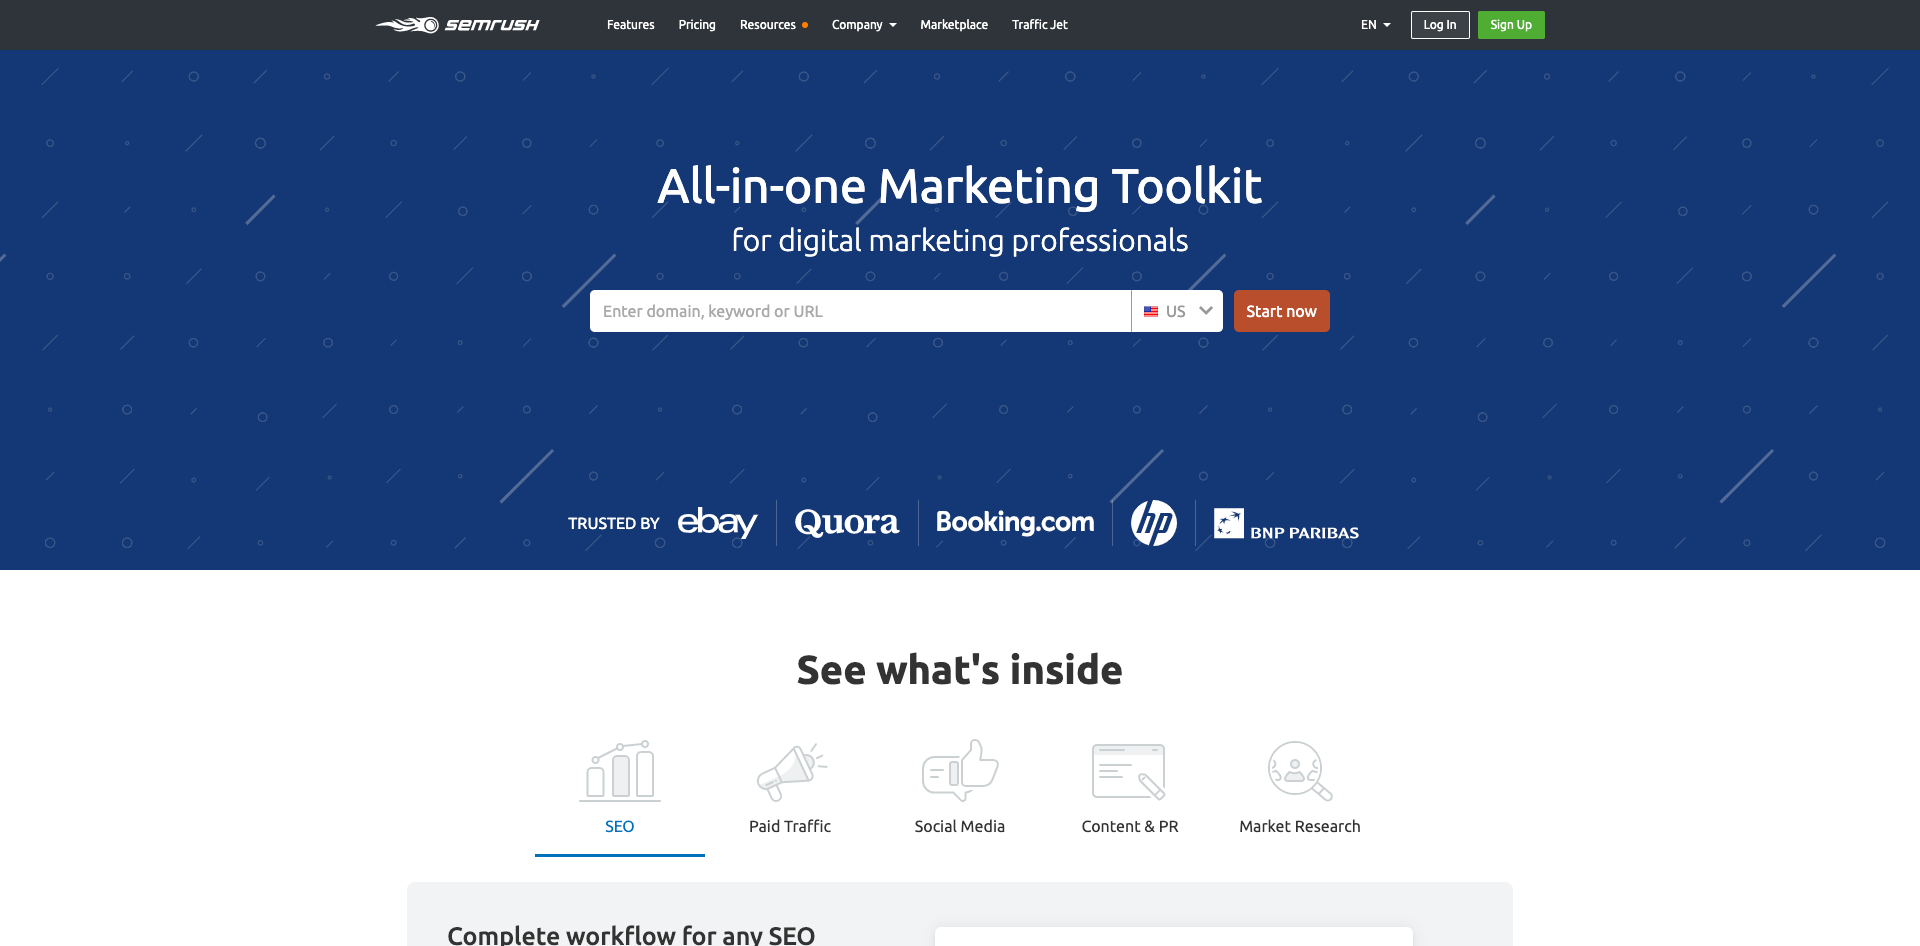 All-in-one Marketing Toolkit for digital marketing professionals